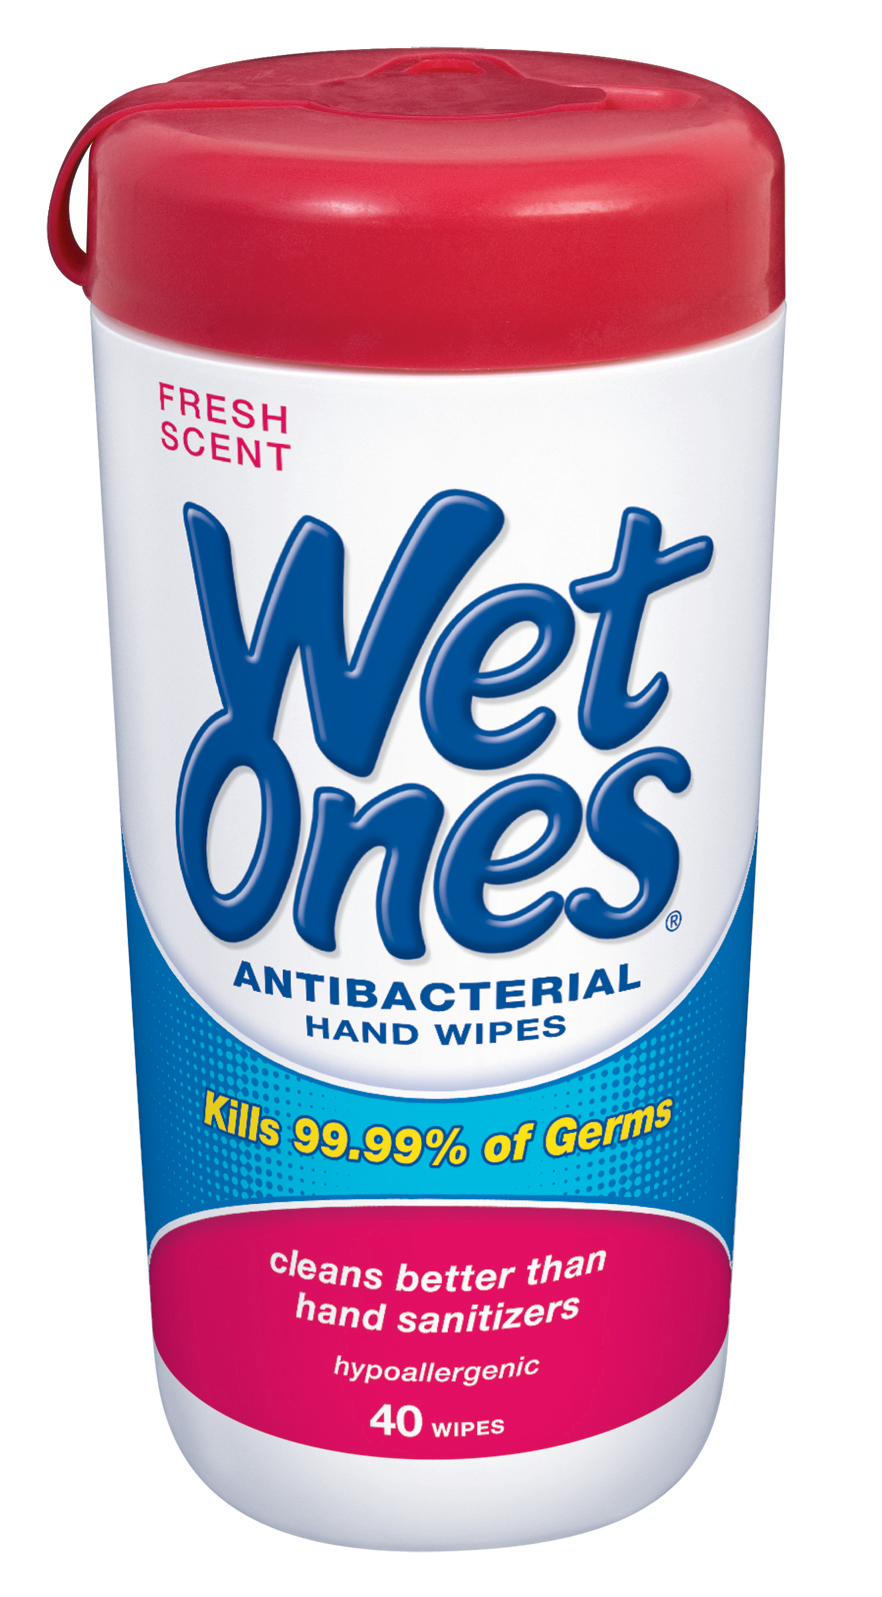 But parents don't consider antibacterial hand wipes a must have